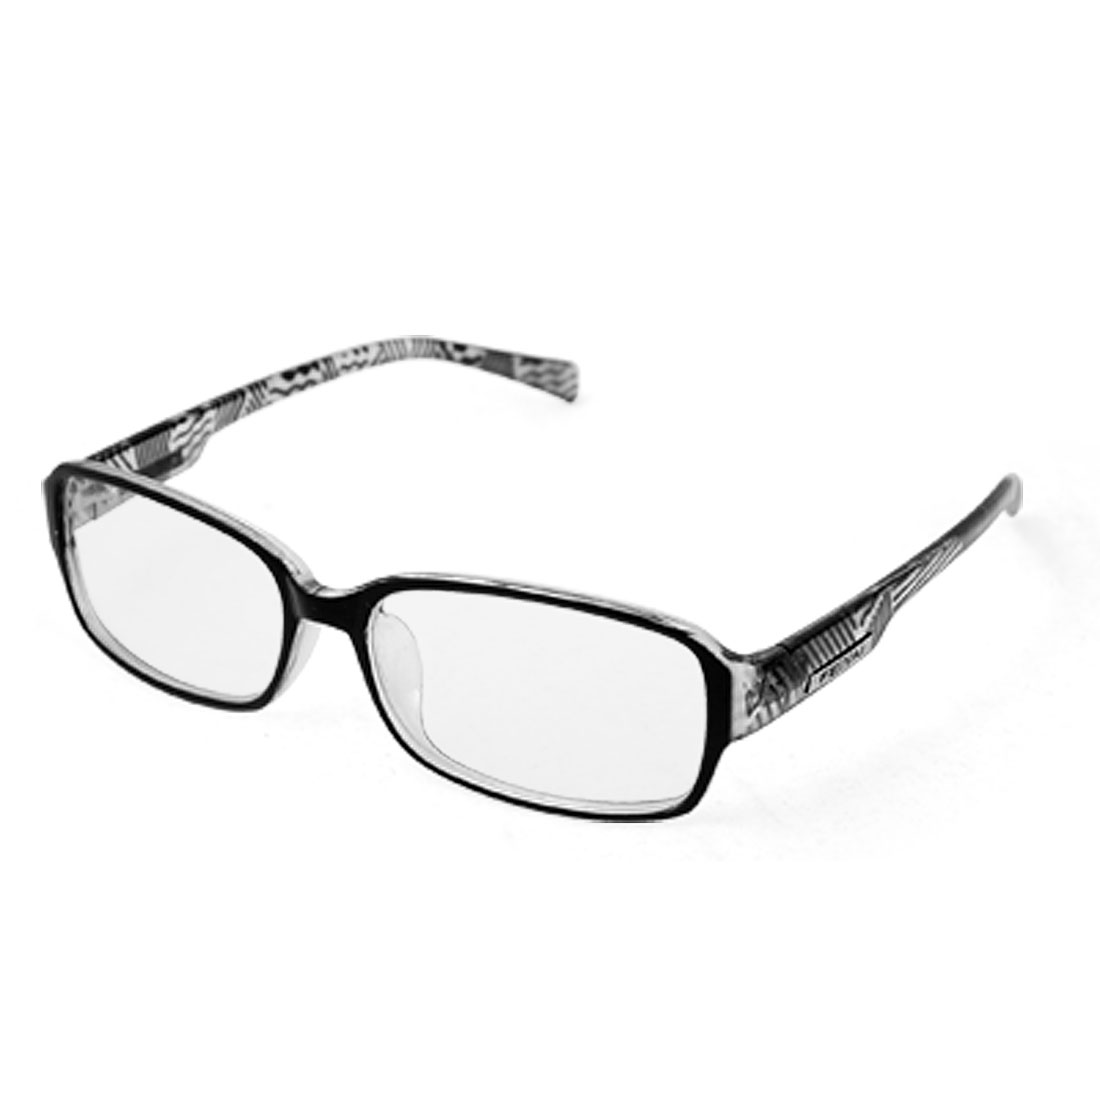 Unisex Black Clear Full Rim Frame Plastic Arms Glasses